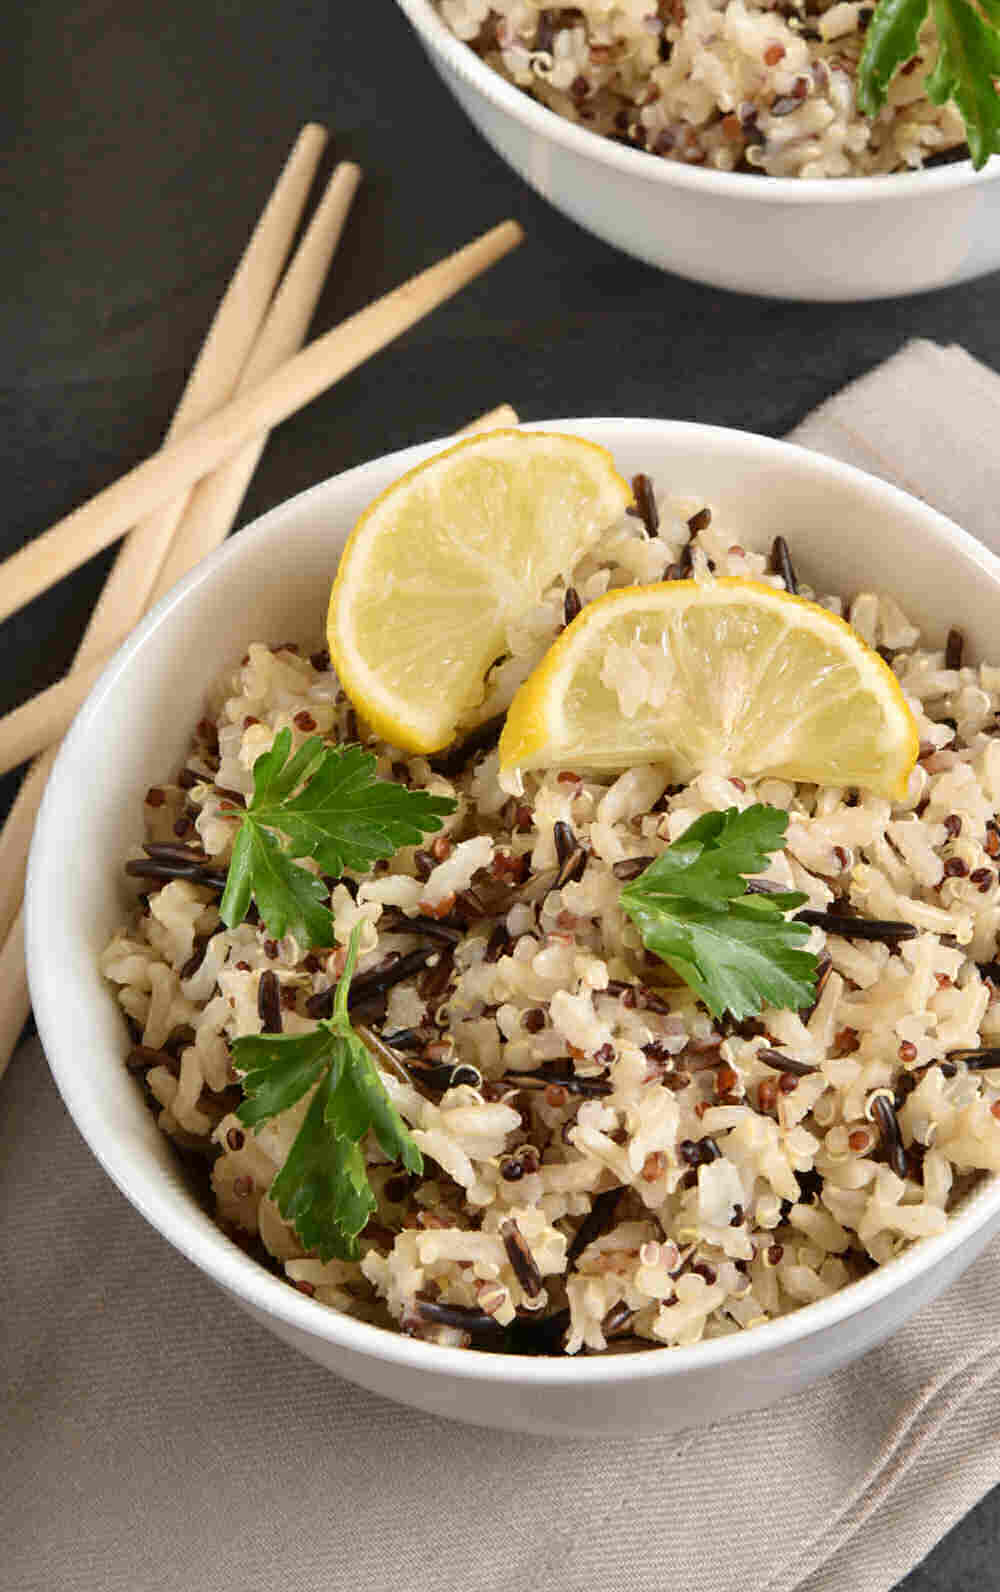 Wild and brown rice recipe with quinoa and chop sticks.